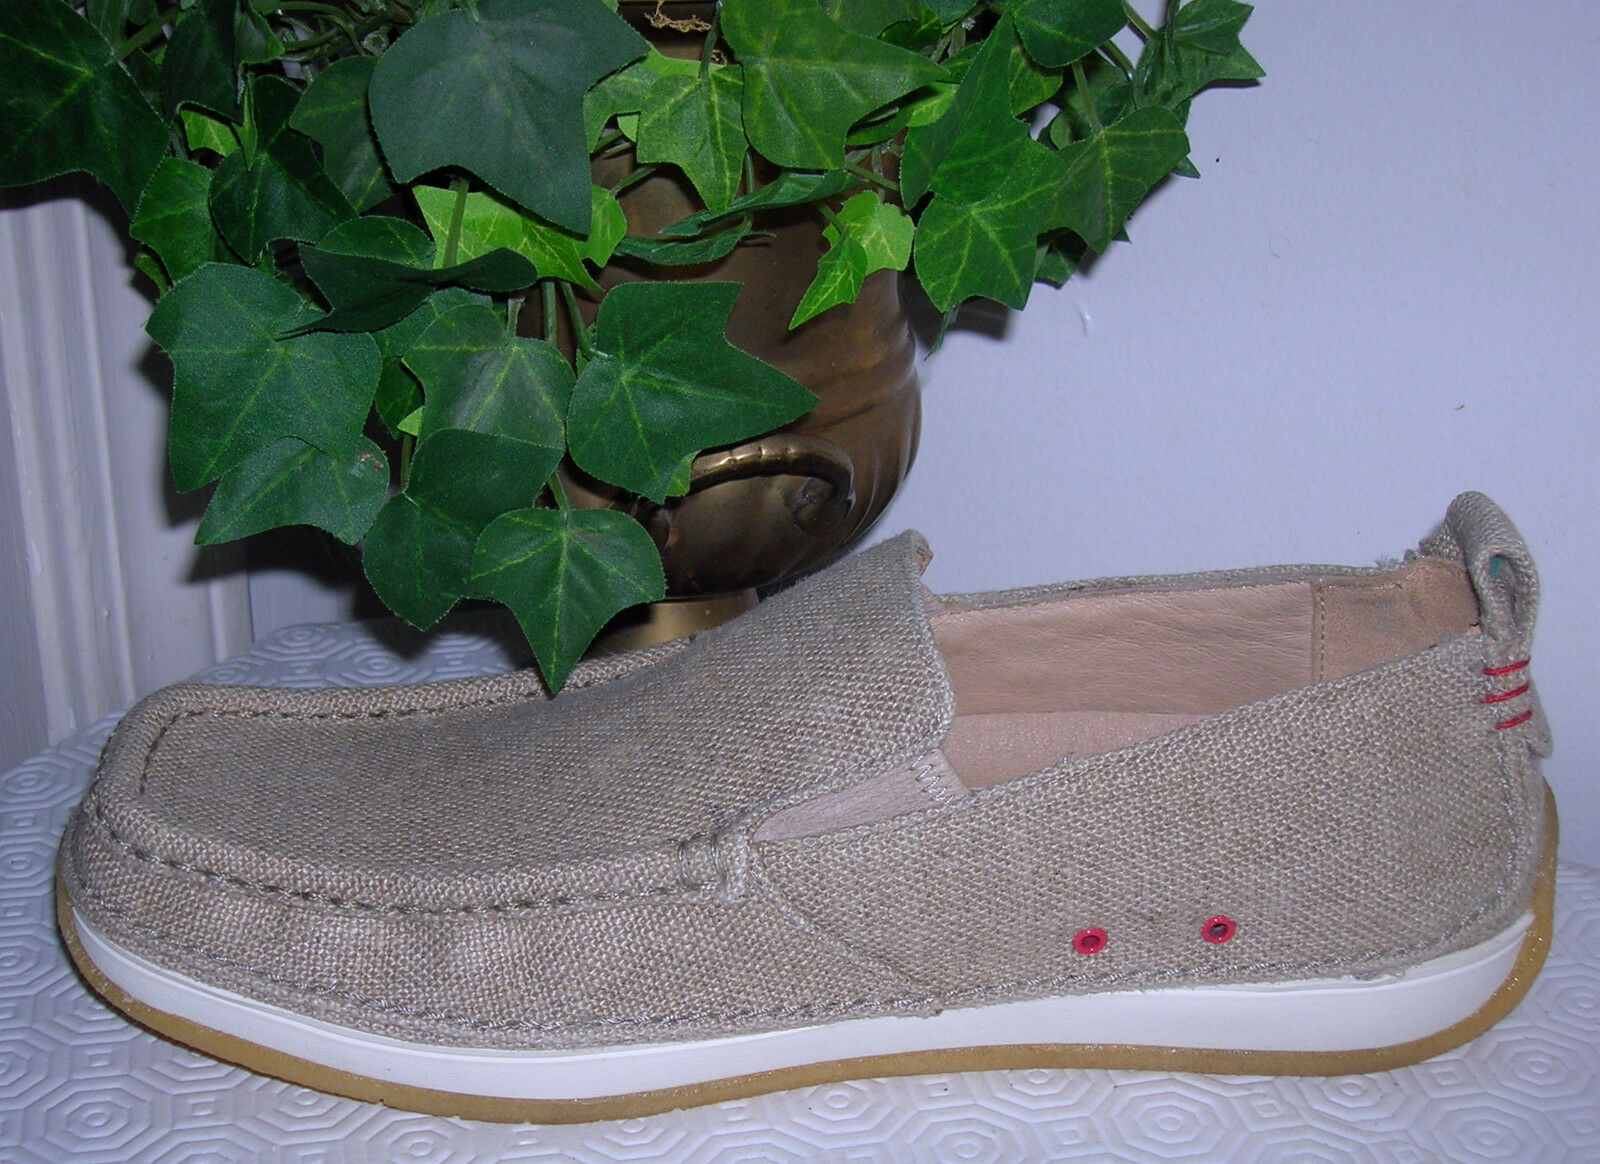 Clarks Originals Wallabee Tabas Loafers Casual Shoes Mens(men's)Size 8 M(sz8)new 1